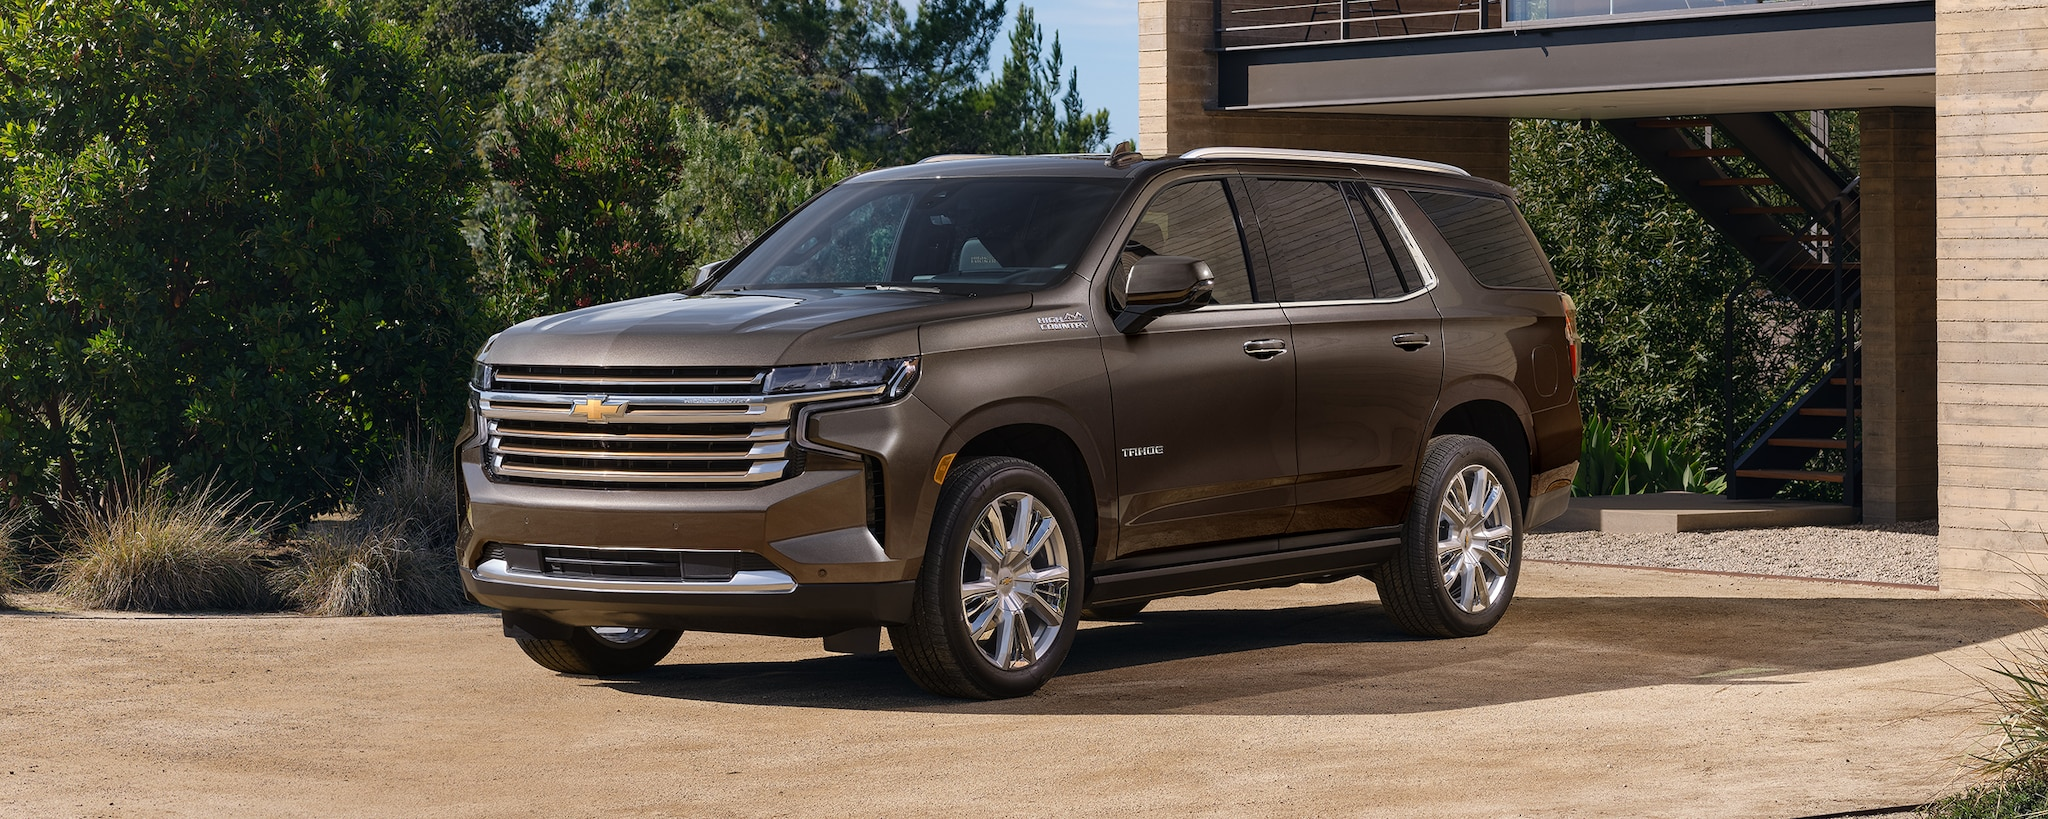 Used Chevrolet Tahoe For Sale In York Pa